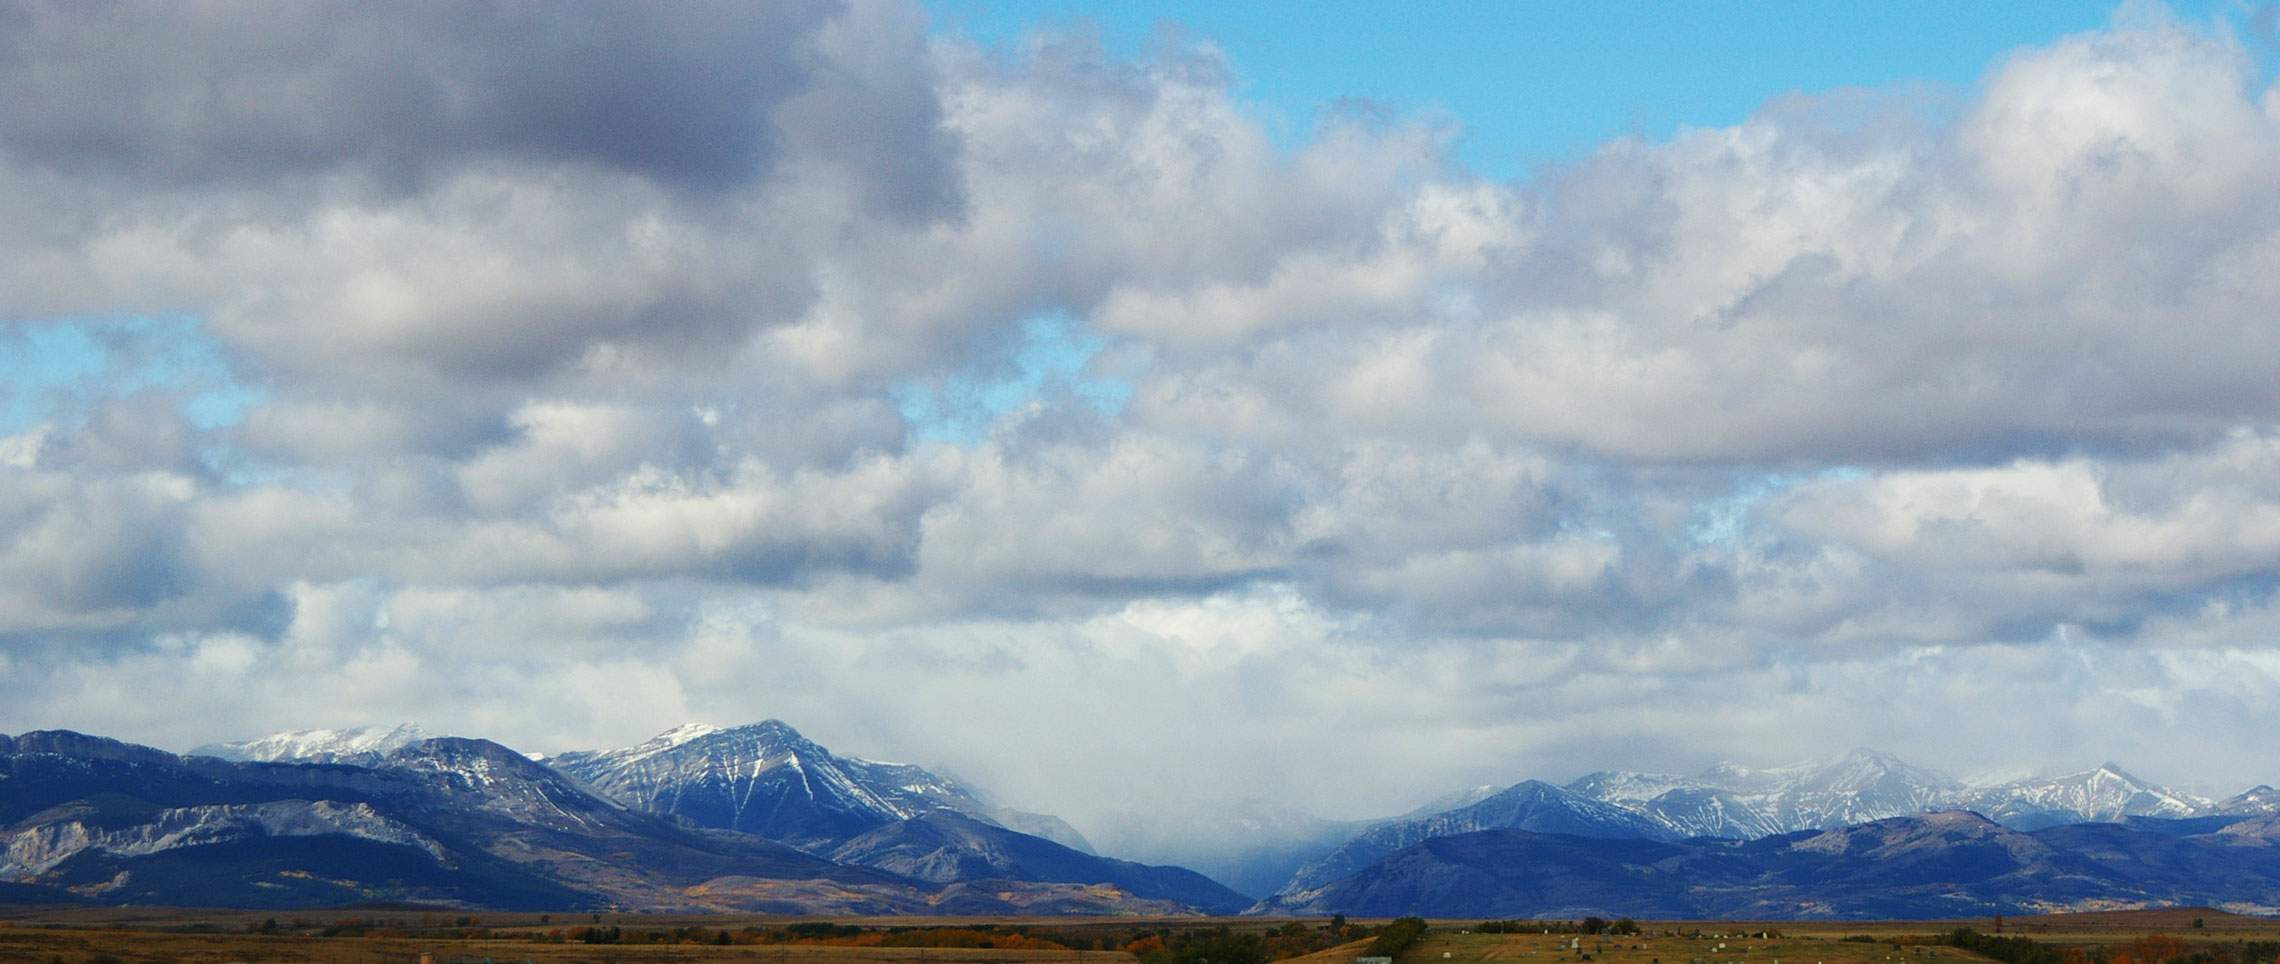 Cloudy sky over Montana mountains